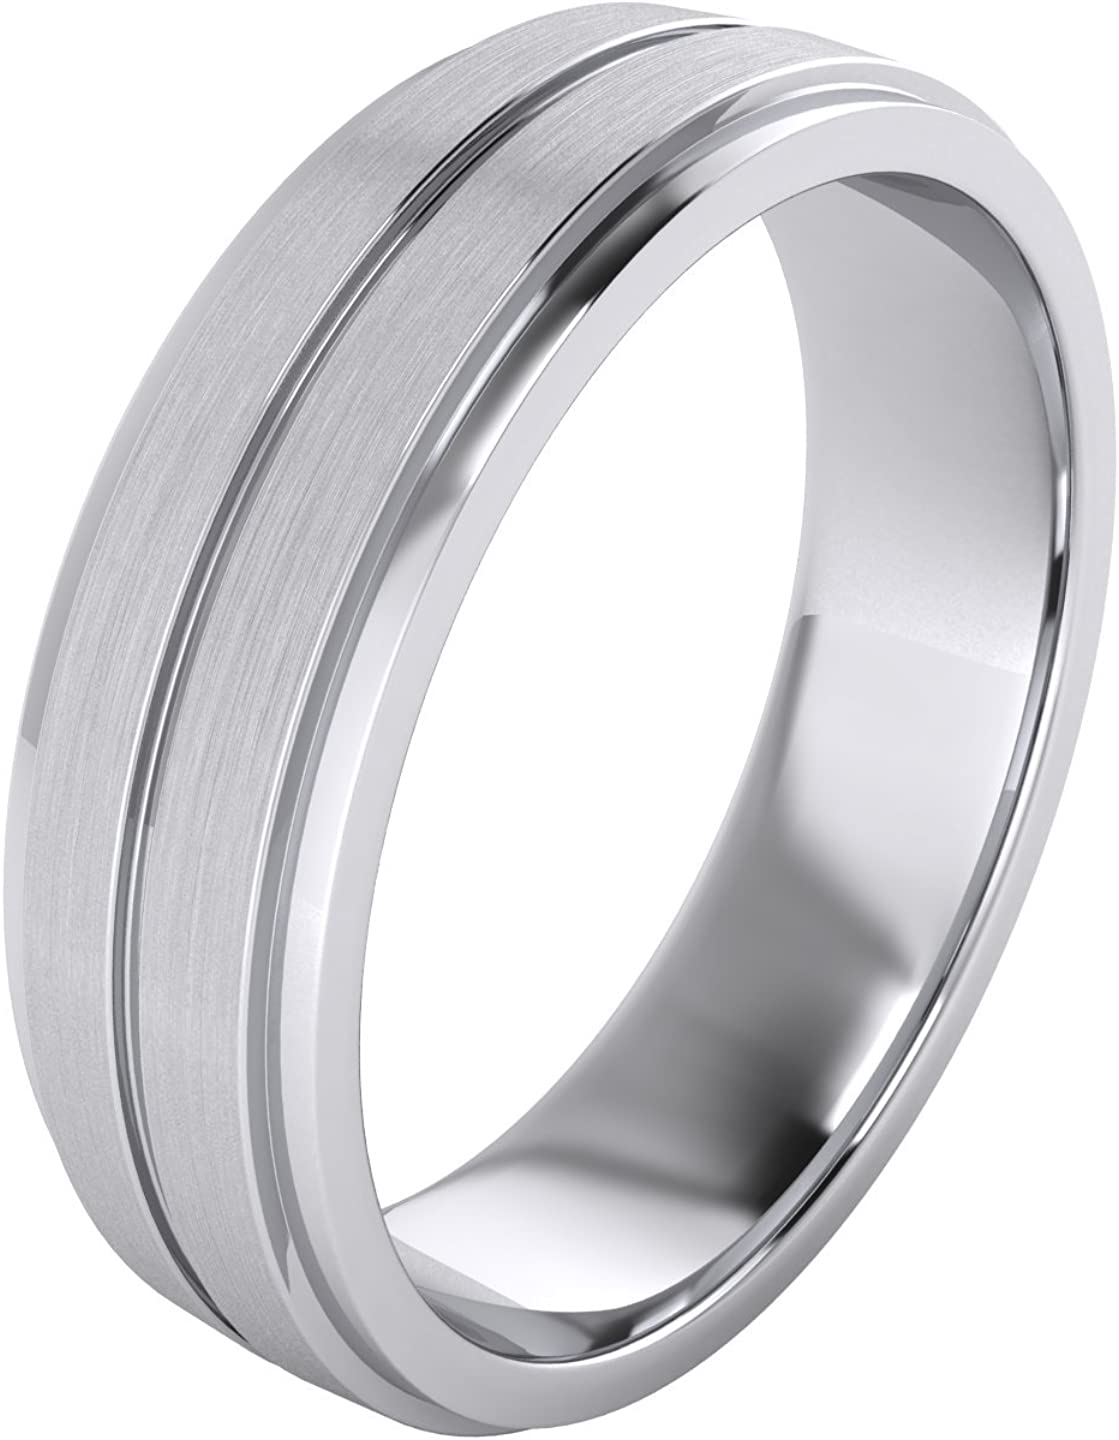 Heavy Solid Super Sale Special Price popular specialty store Sterling Silver 6mm Band Comfort Unisex Fit Wedding